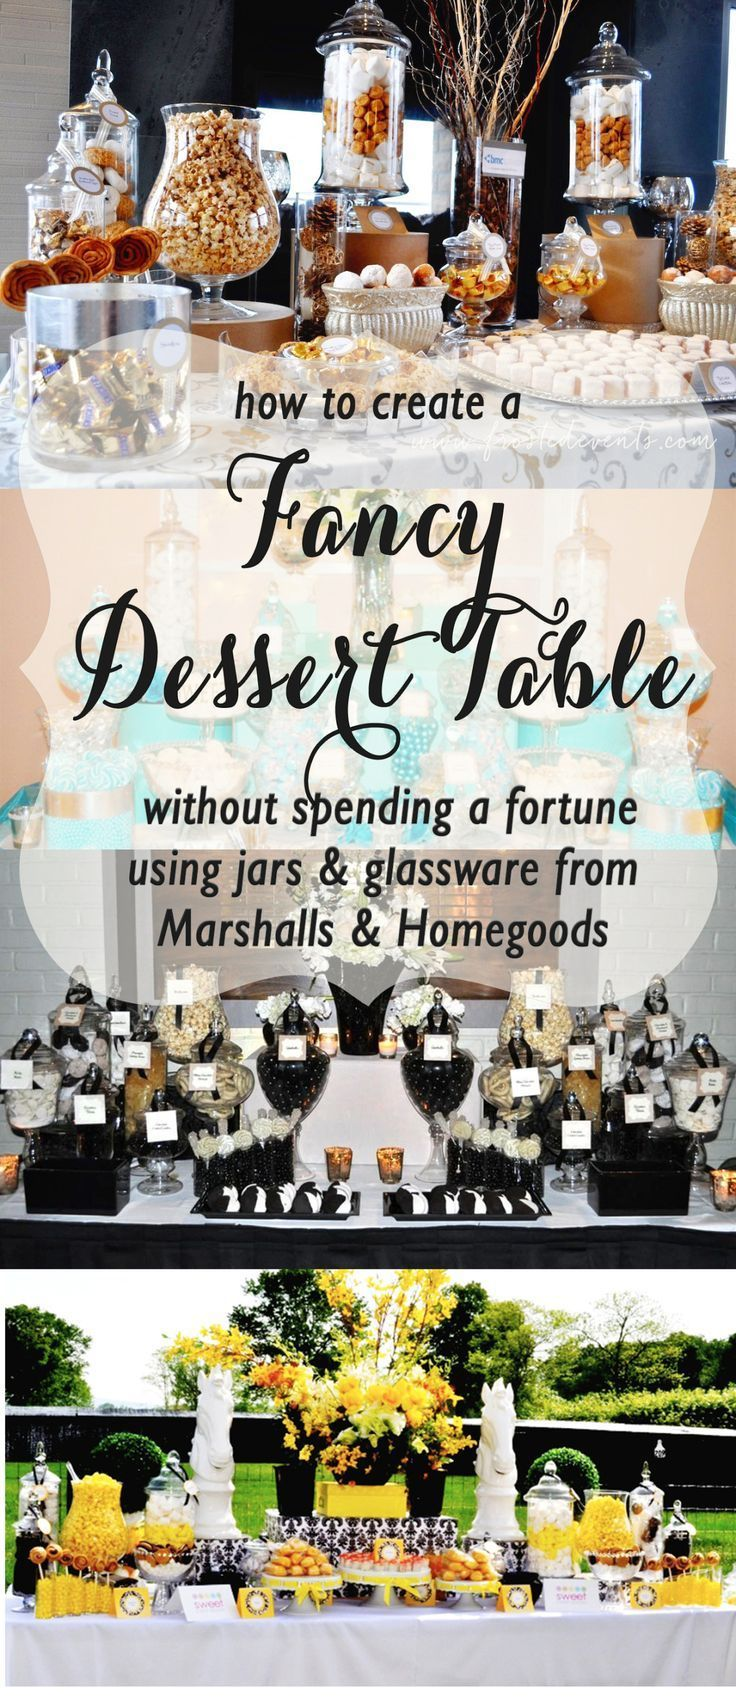 DIY Dessert Table For Wedding or Party|Design a Dessert Buffet that Wows via Frosted Events @frostedevents Tip: Get your apothecary jars, glassware and serving dishes from @marshalls and @homegoods ! They have a huge selection and the best deals